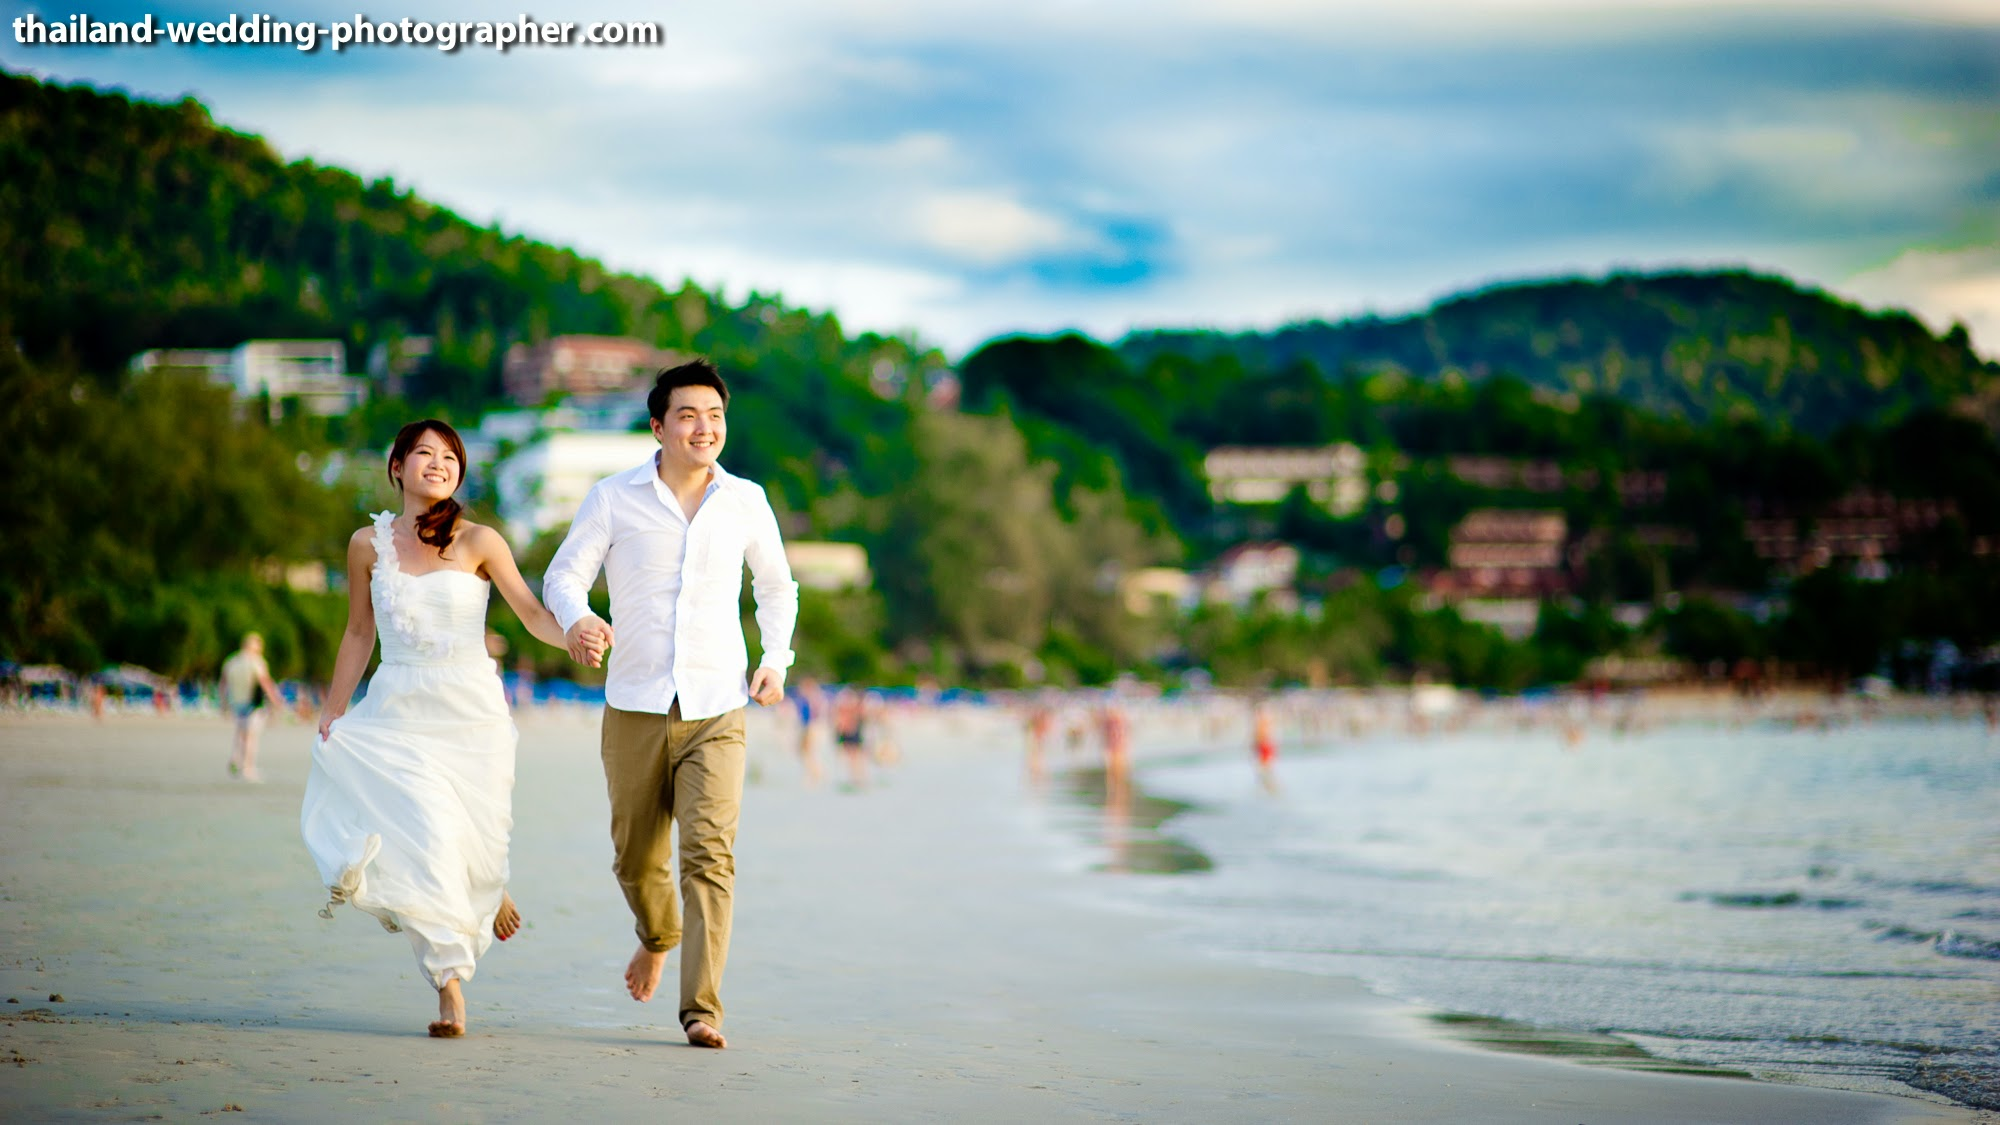 Photo of the Day: Happy Wedding Couple on Phuket Beach